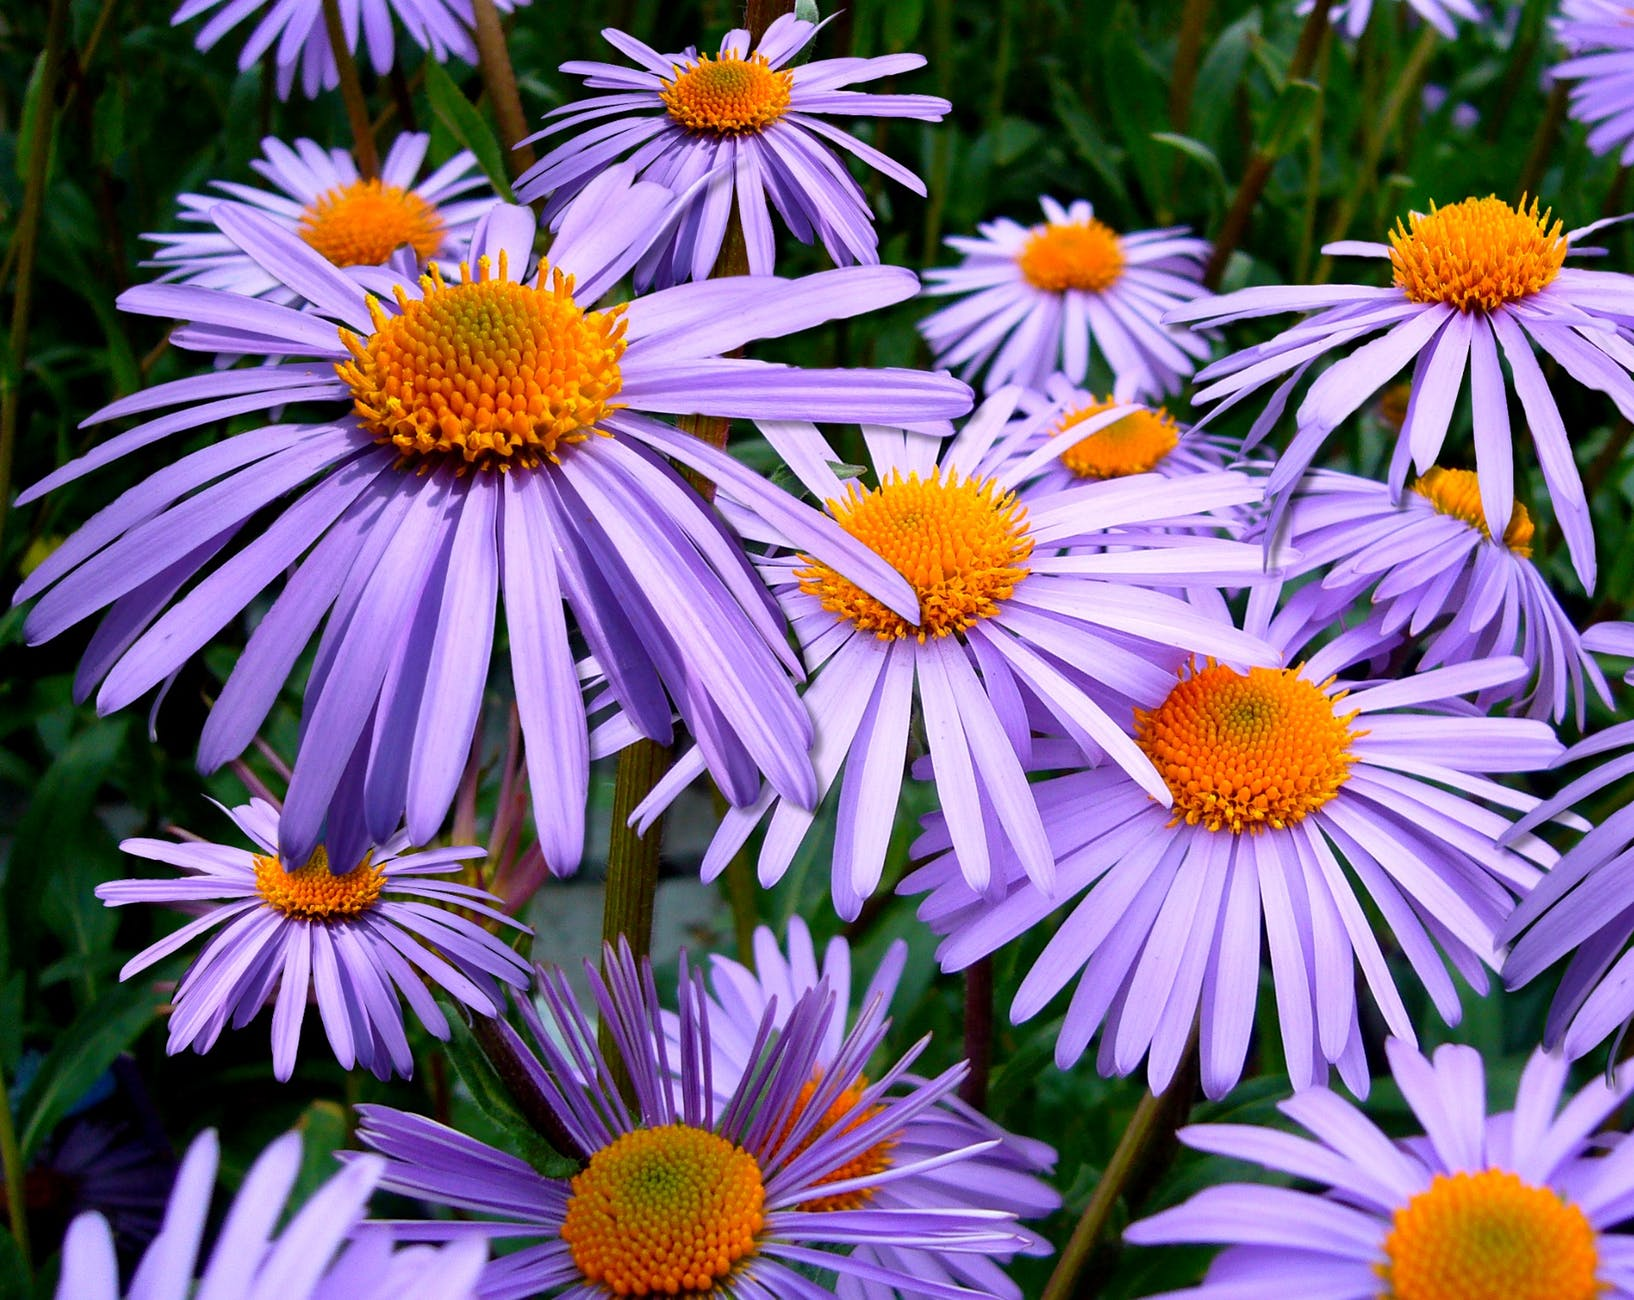 aster-novae-top-beautiful-flowers-around-the-world-colorful-buds-colors-ideas-blossom